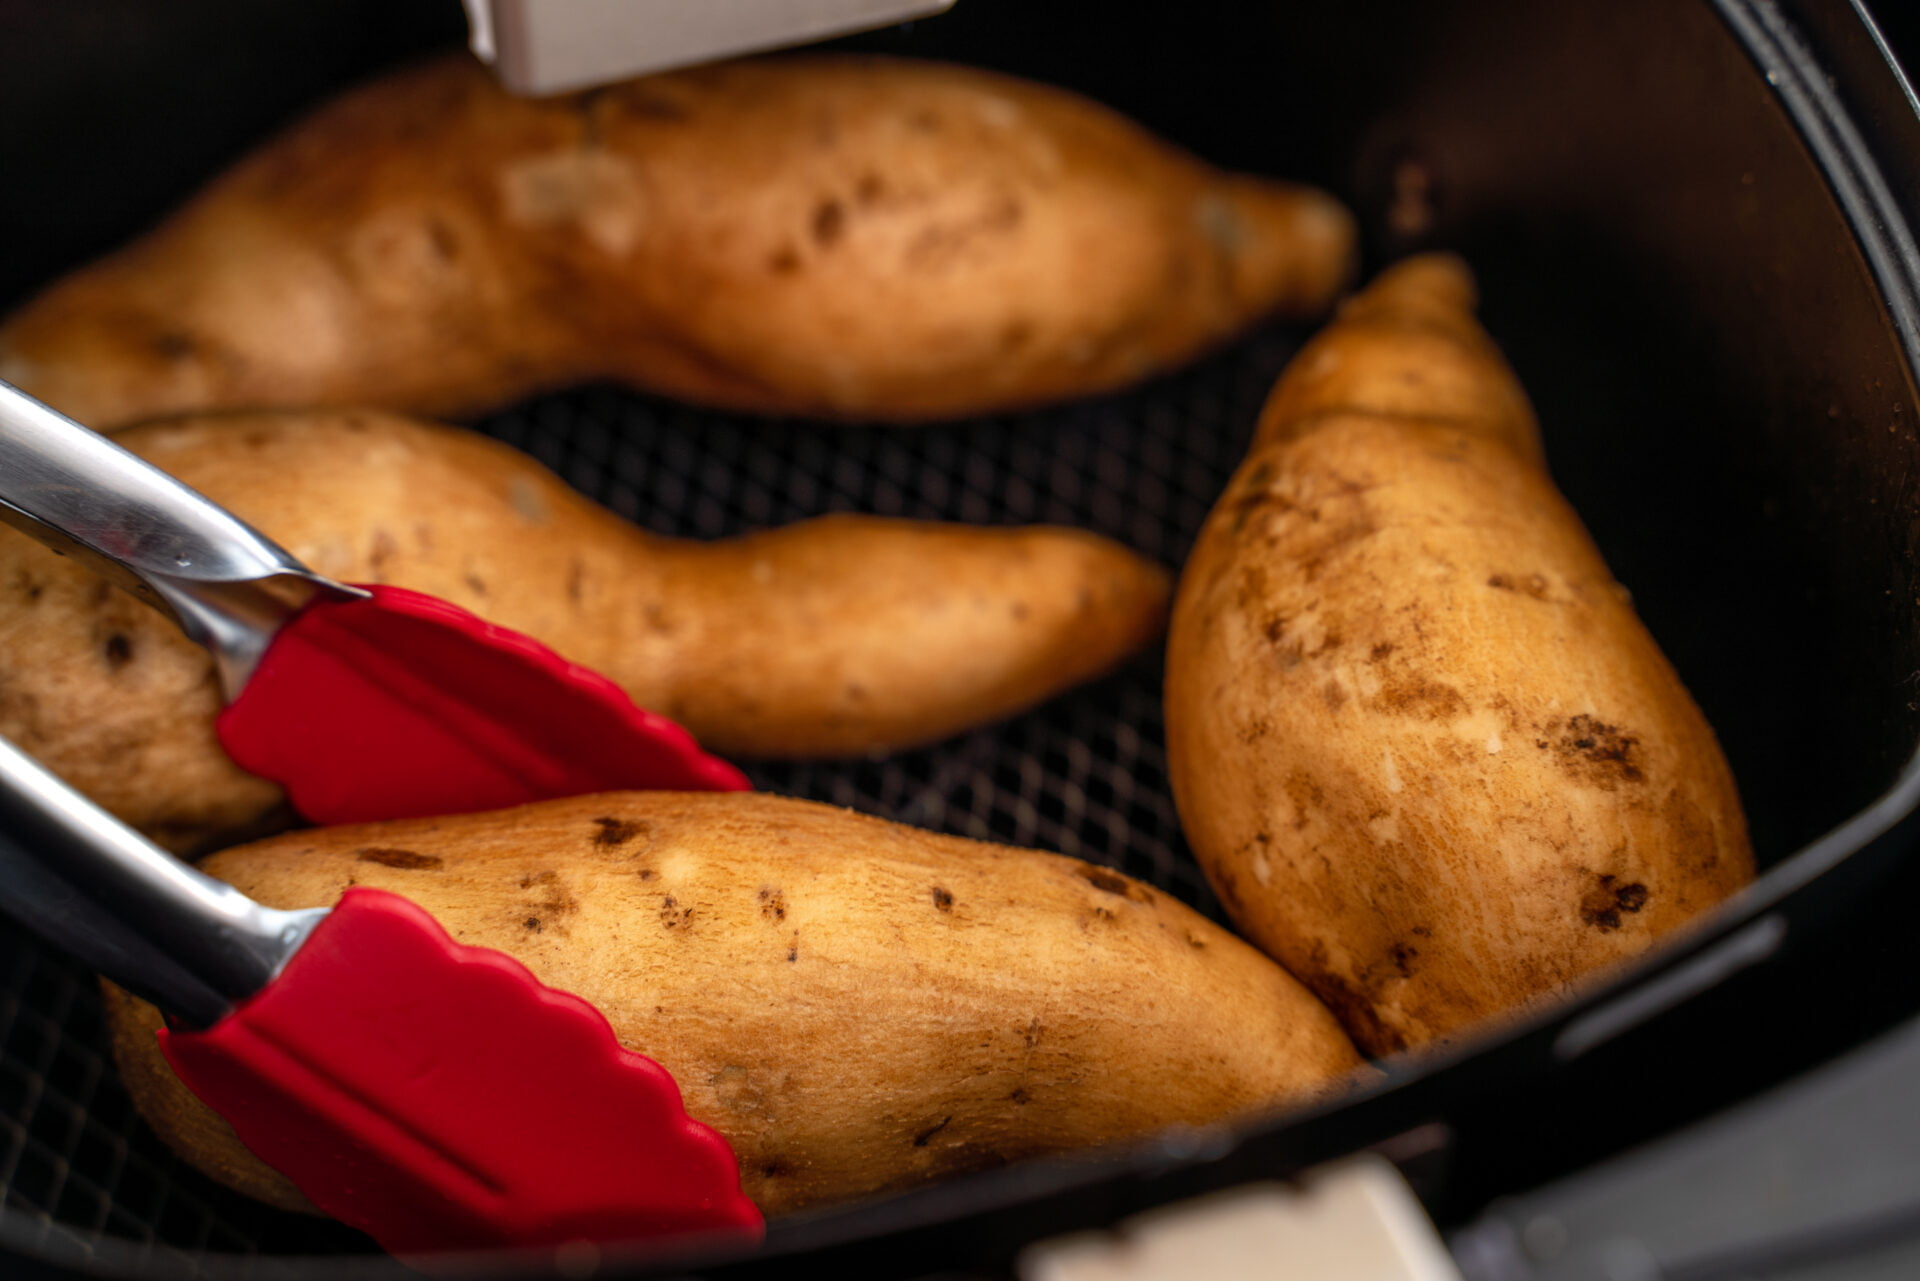 Roasted sweet potato cooked by airfryer at home. Healthy food for diet eating